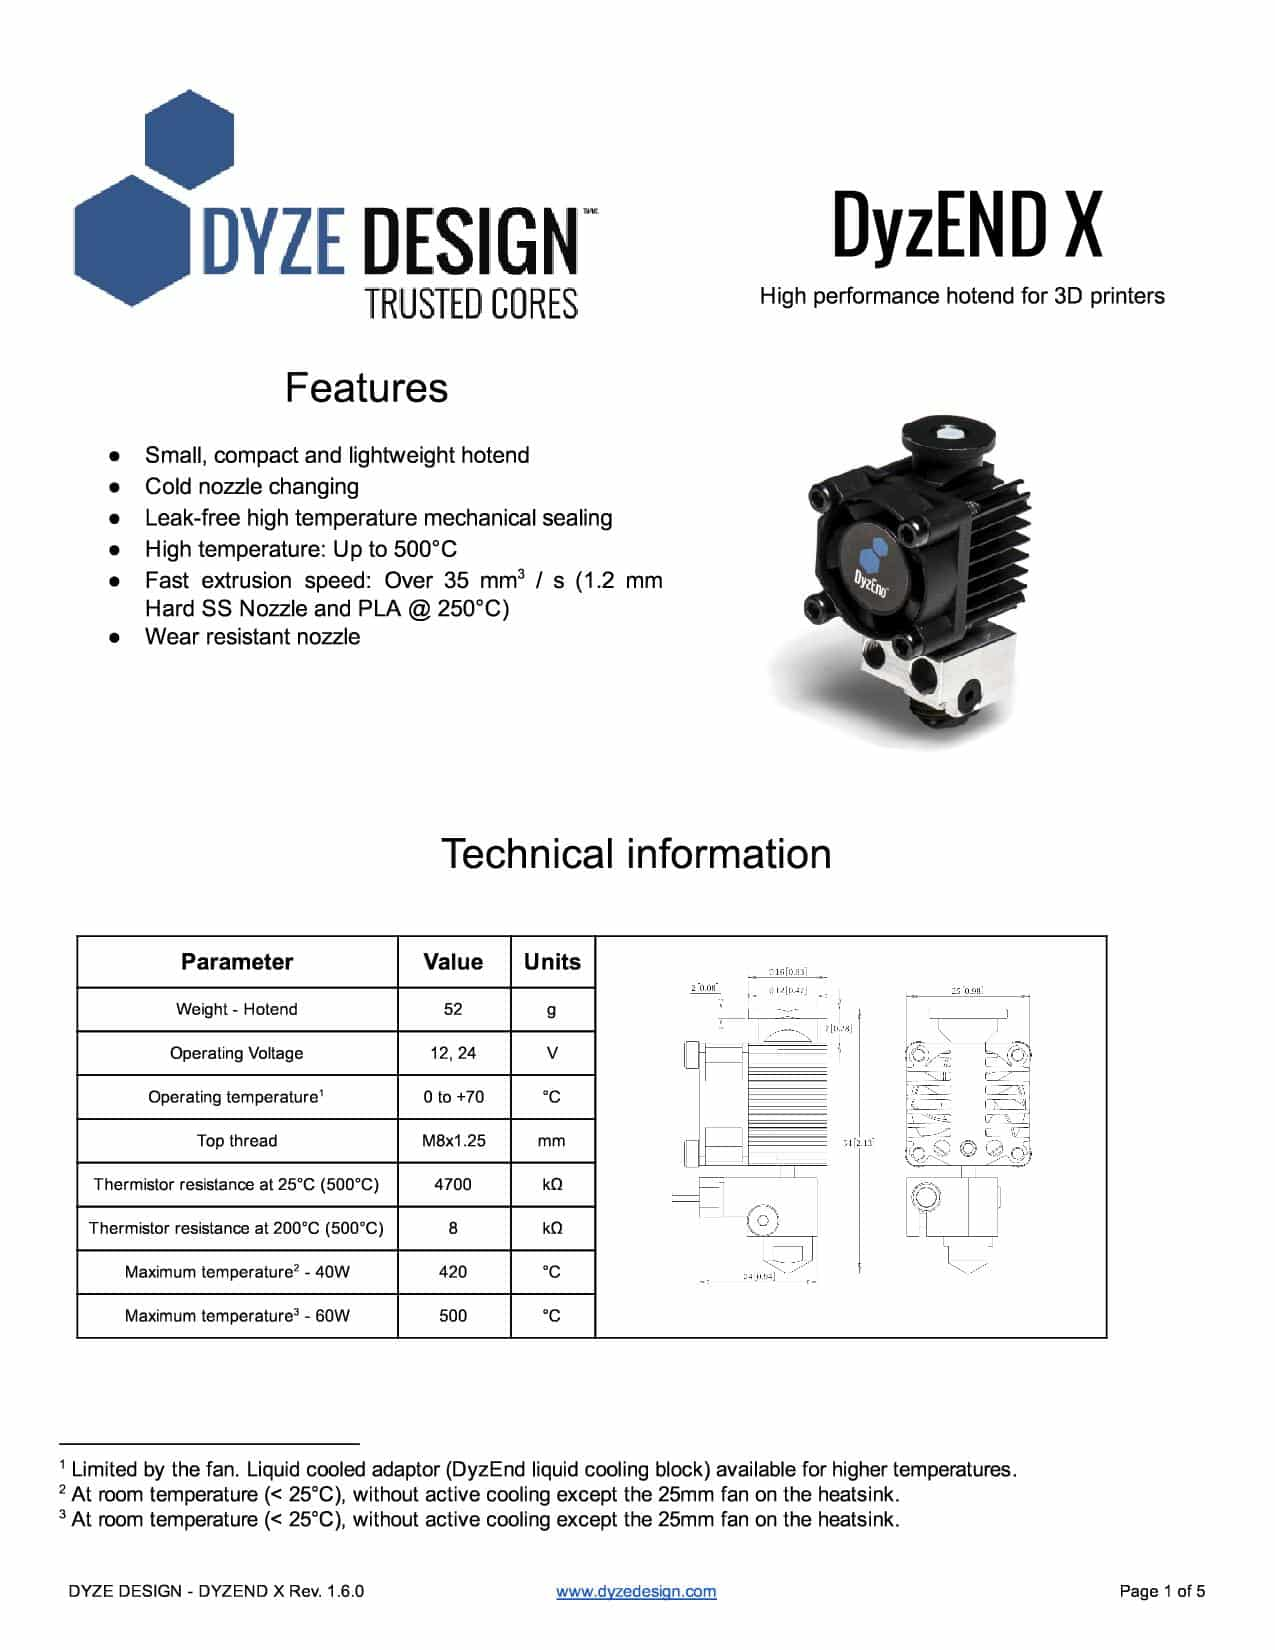 DyzEND-X HotEnd Specification